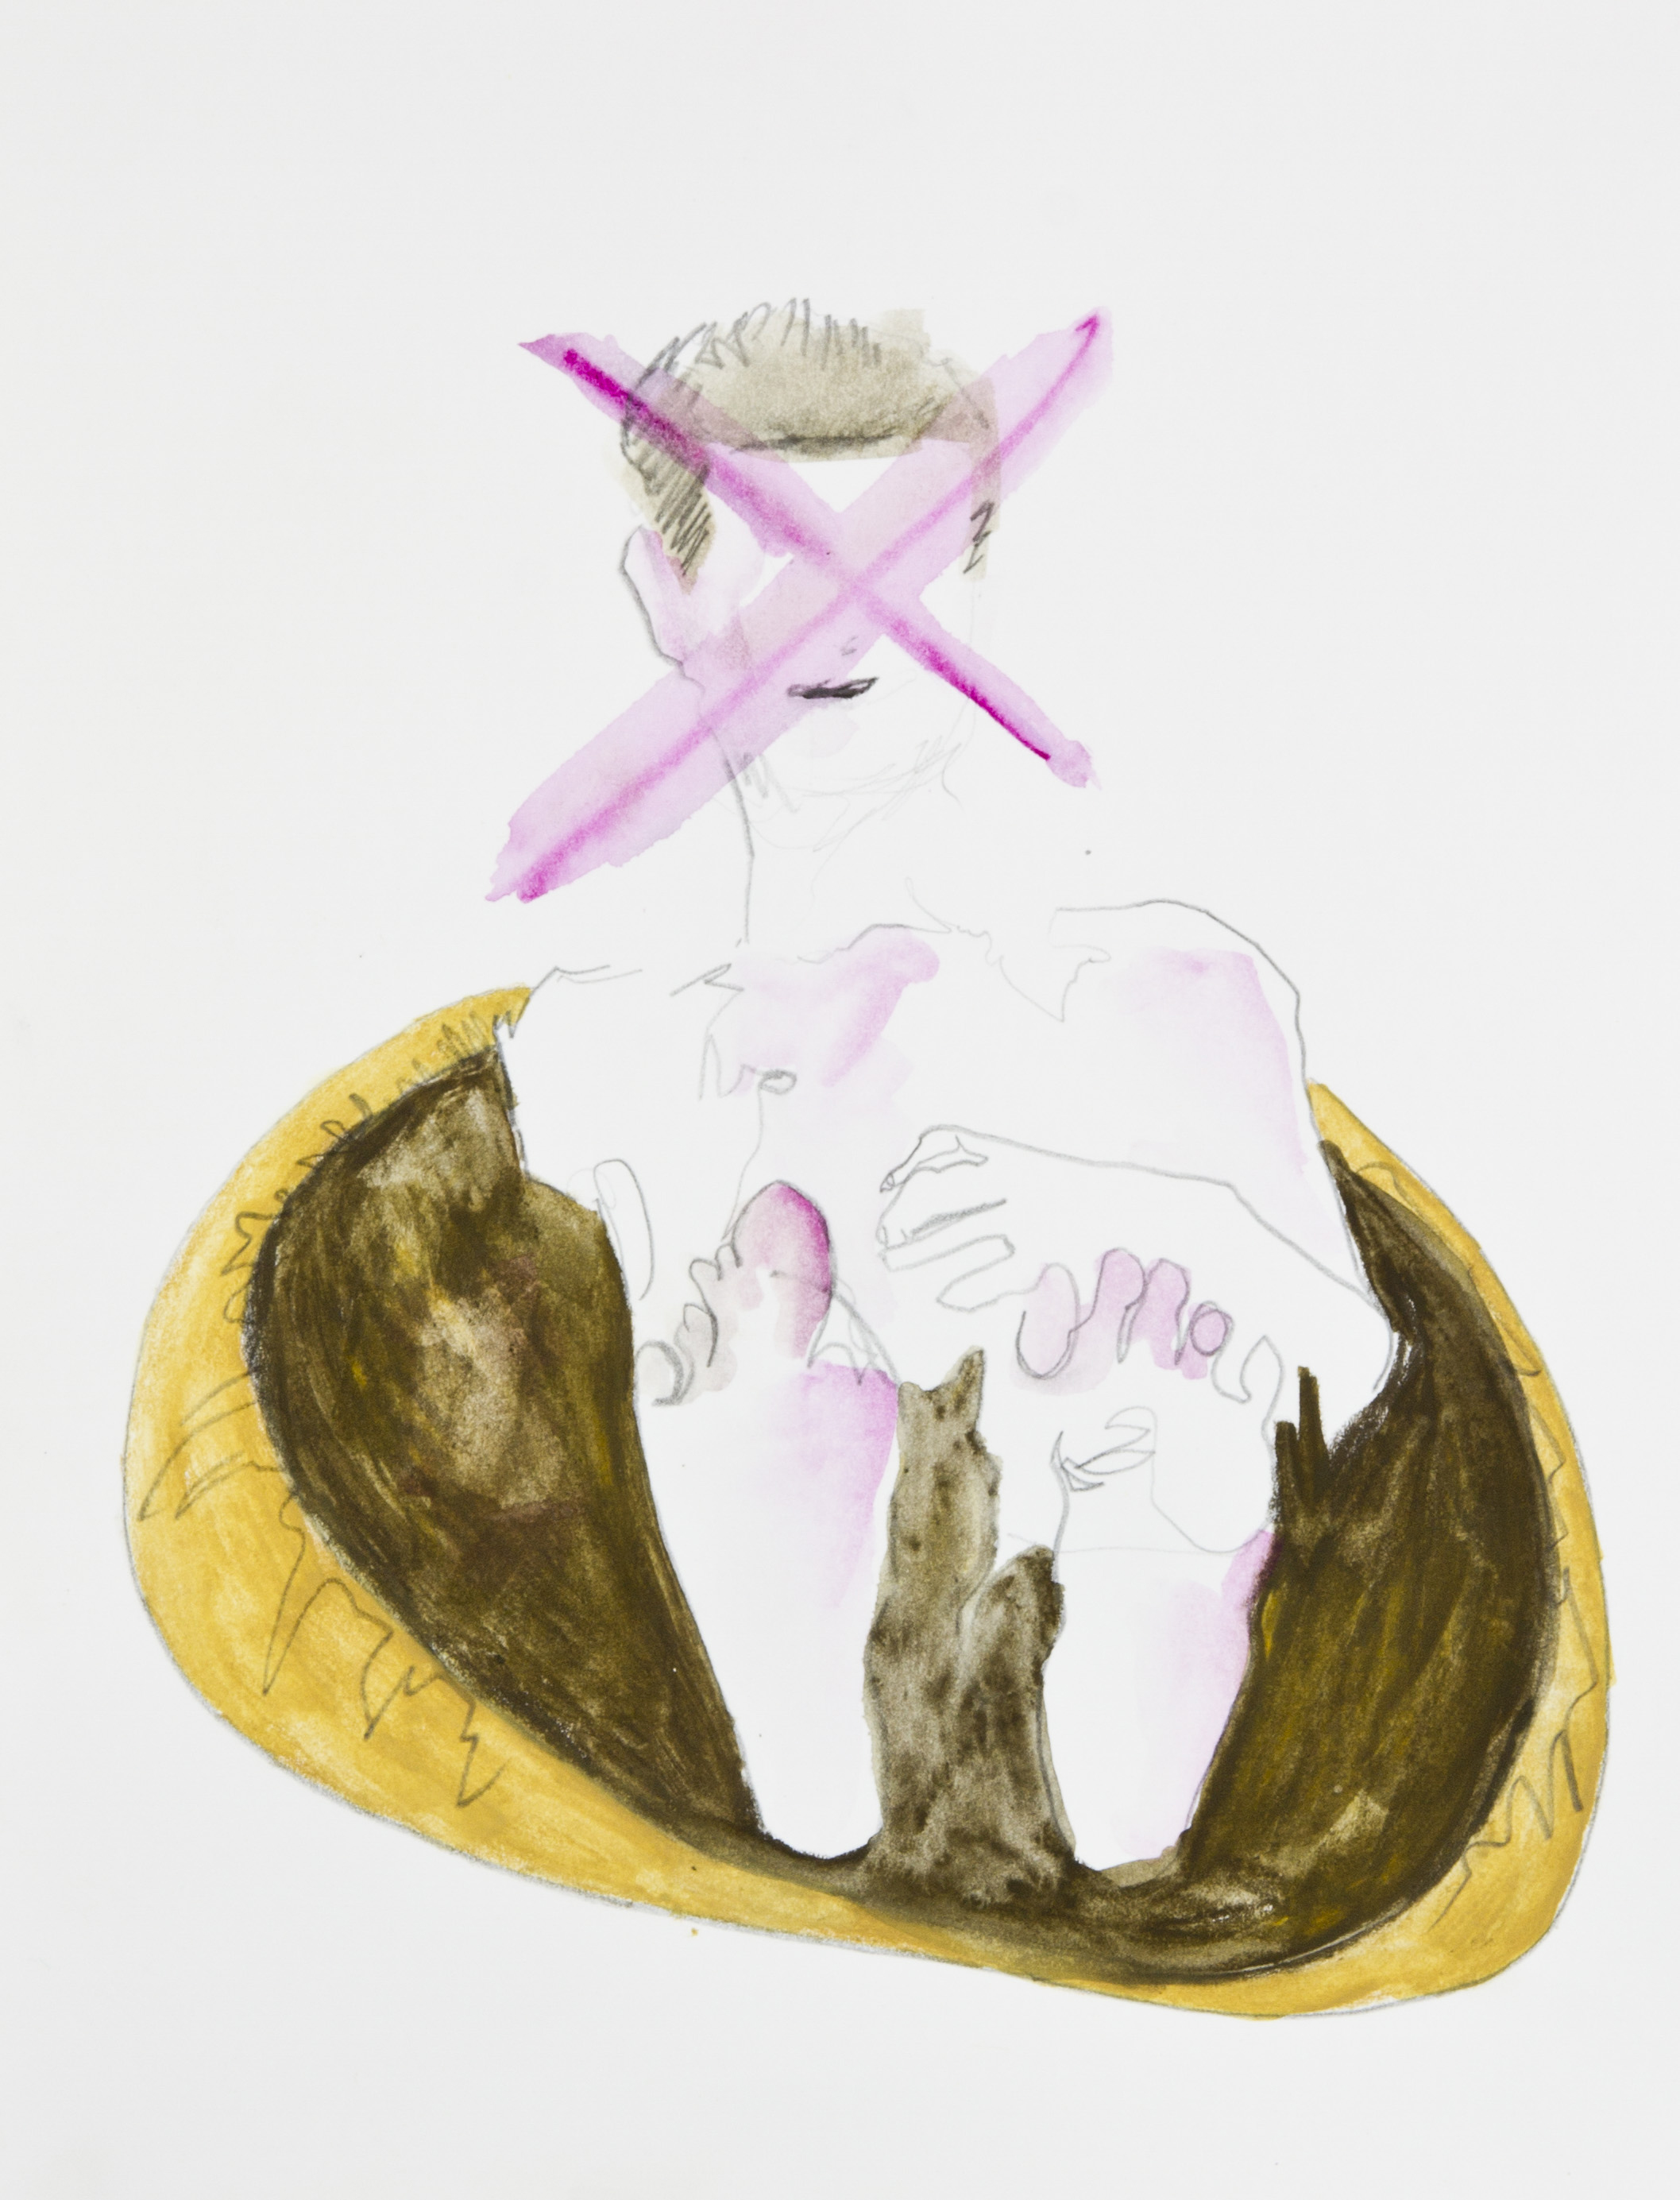 No To The Void 2013, graphite, crayon and watercolor pencil on paper, 11x14 inches